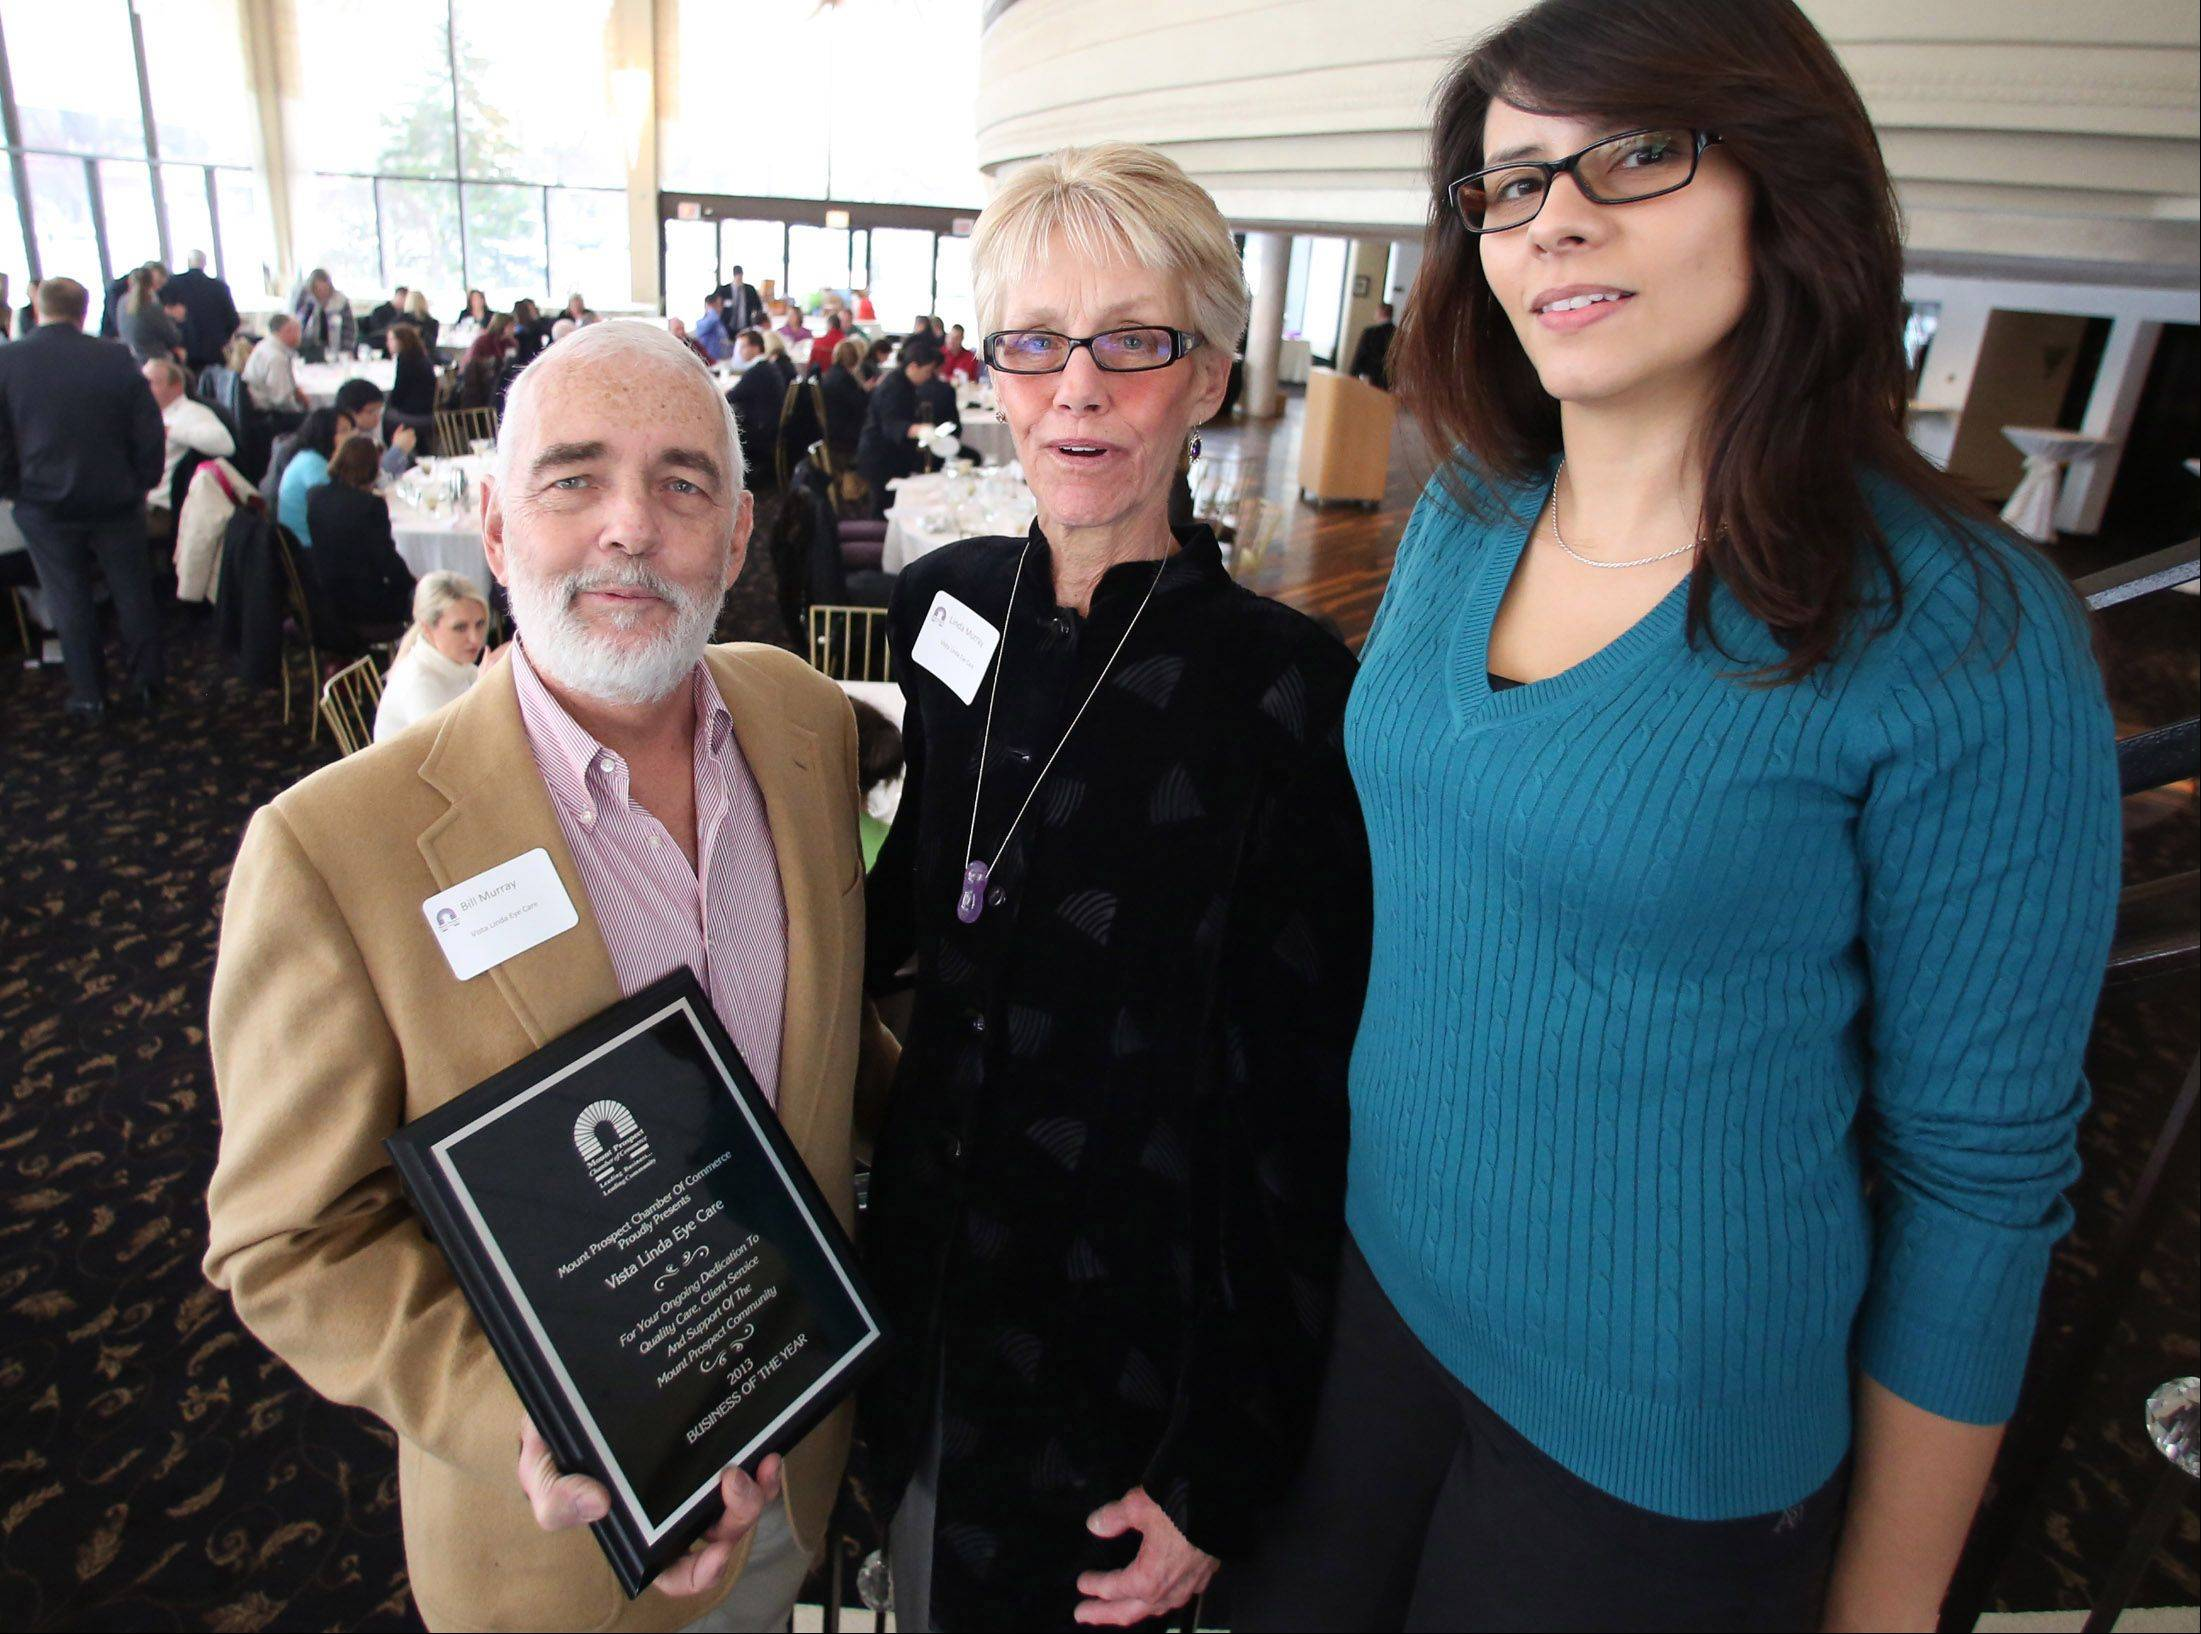 During the Mount Prospect Chamber of Commerce's Dynamic Year luncheon Vista Linda Eye Care was named business of the year. Owners Bill Murray and his wife Dr. Linda Murray and manager Adriana Smith at right pose with the plaque.